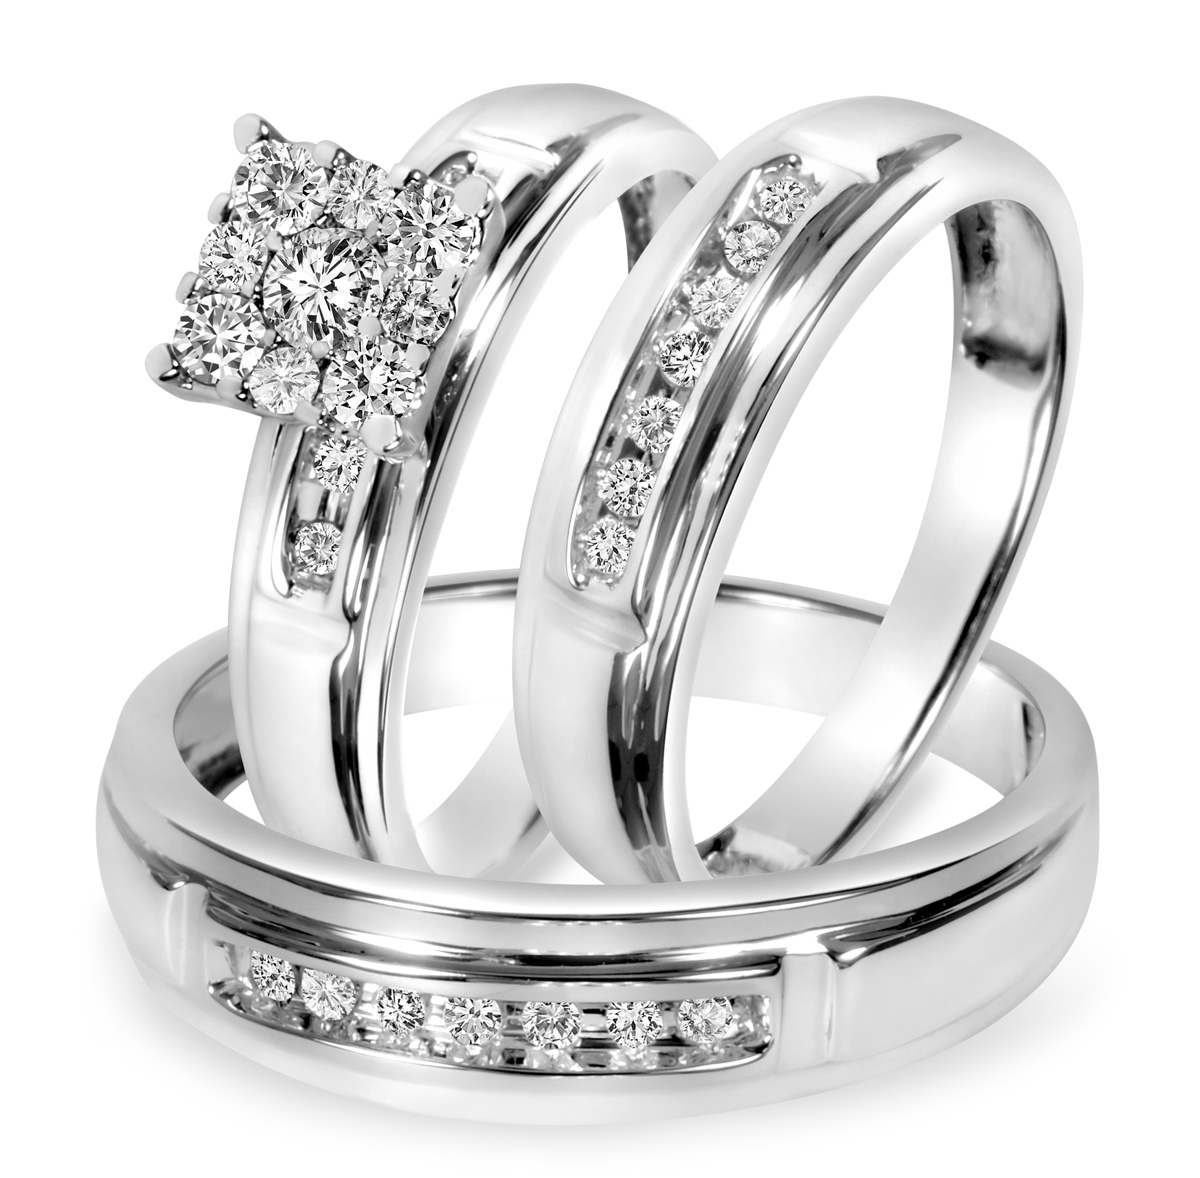 Tw Diamond Trio Matching Wedding Ring Set 10k White Gold  My Trio Rings   Bt518w10k